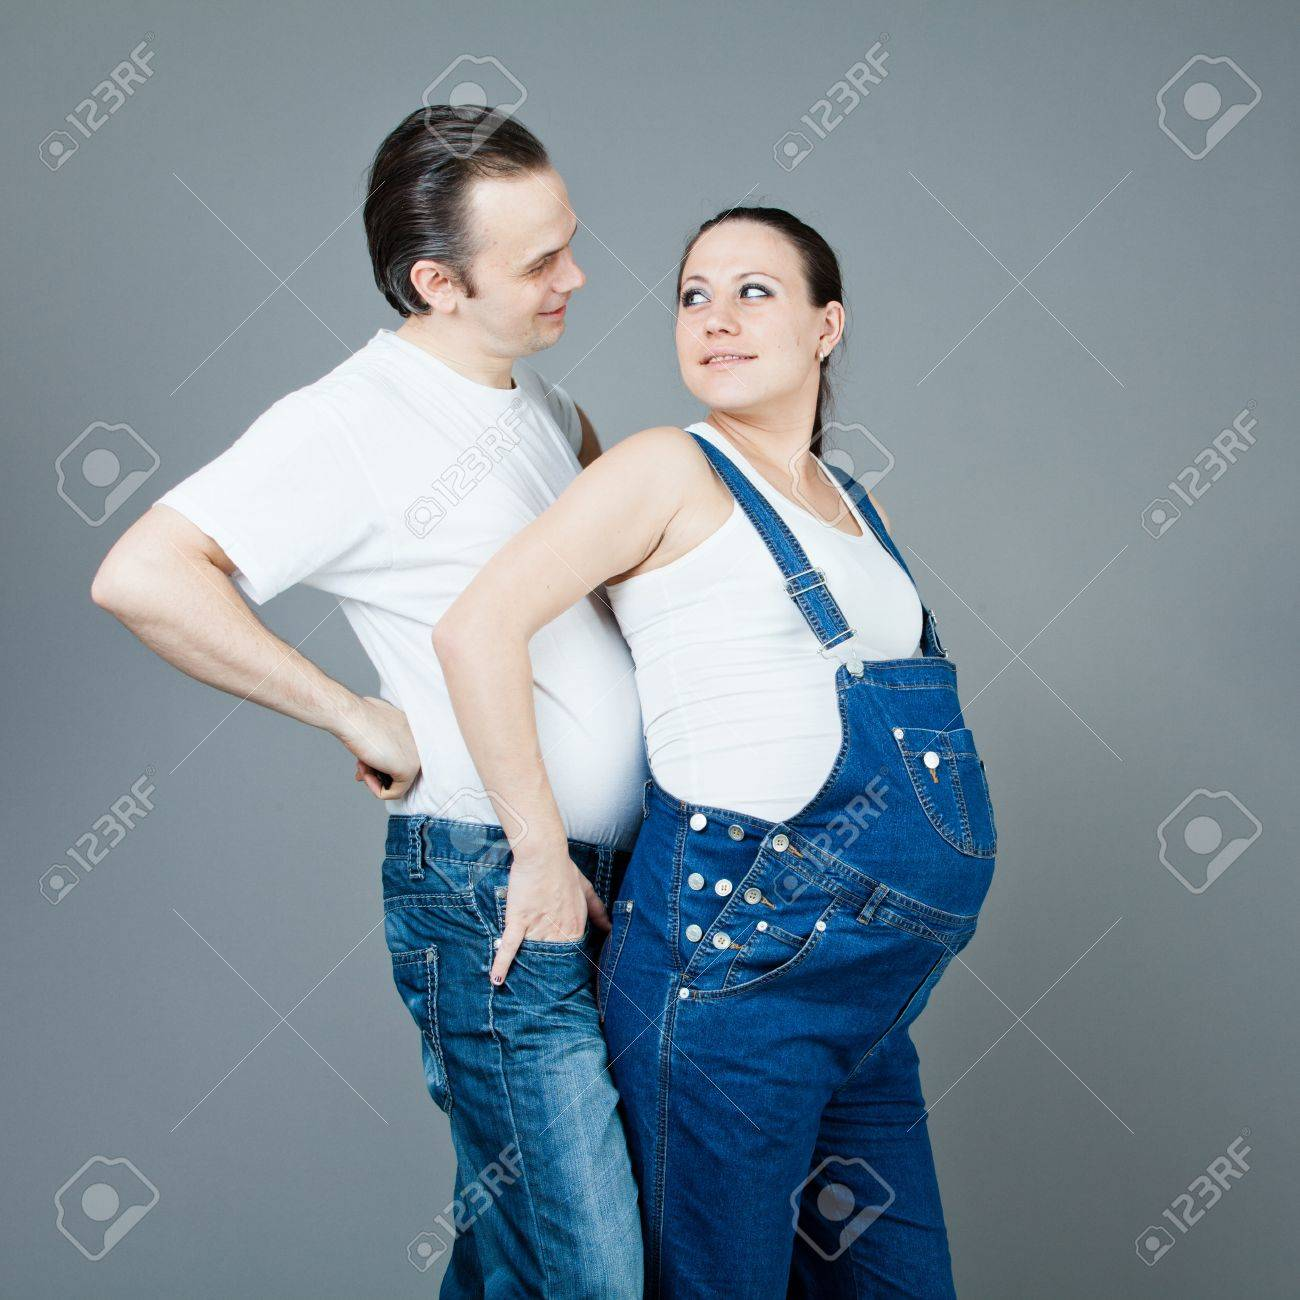 A man and a pregnant woman, the couple posing on a gray background Stock Photo - 15616192